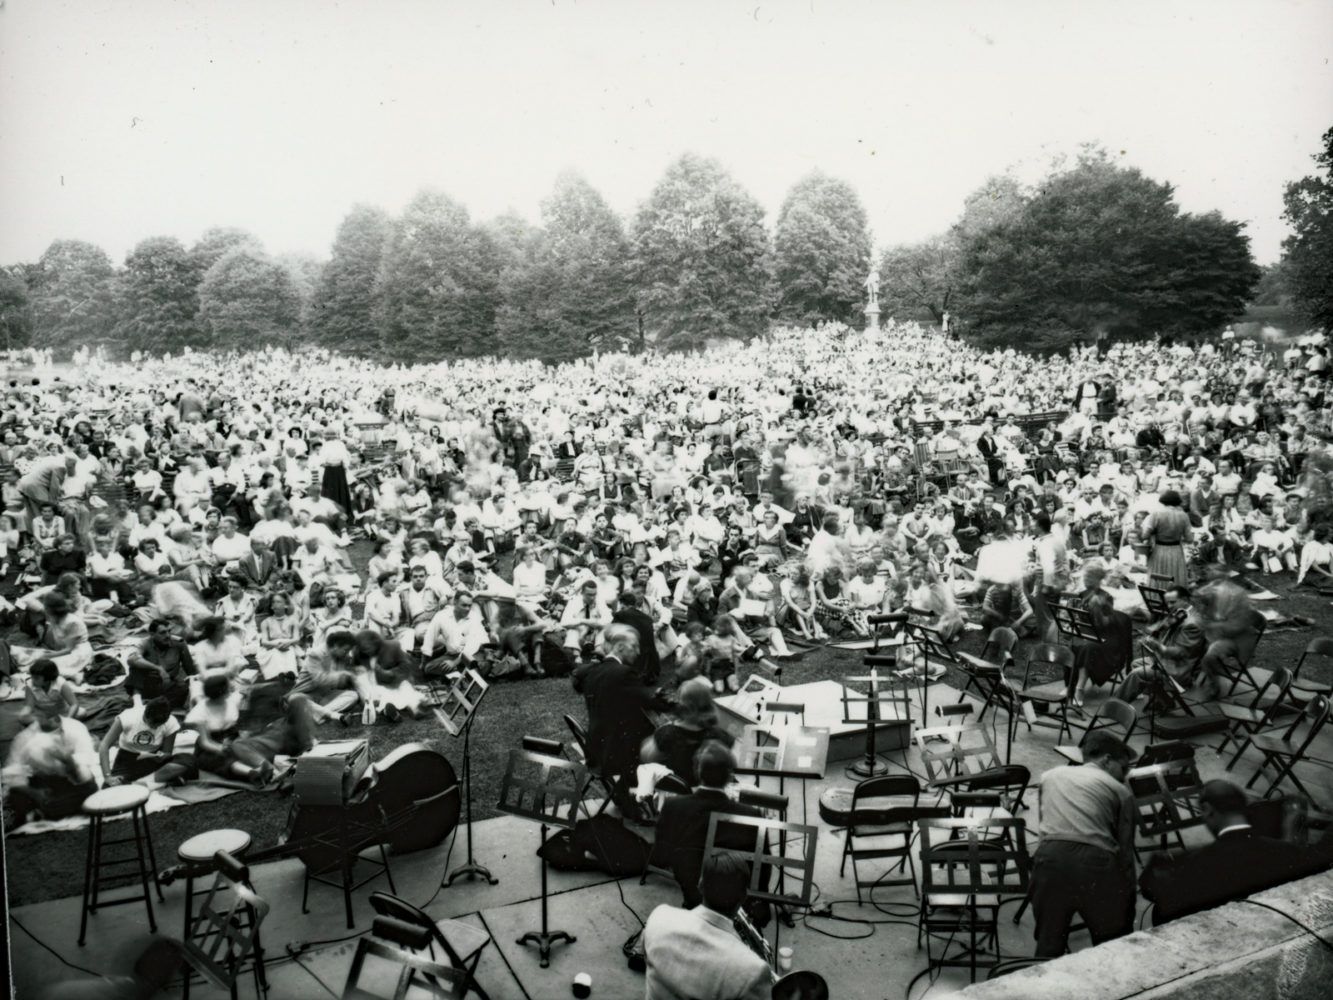 Opera in Highland Park on August 12, 1953 – photo from City of Rochester